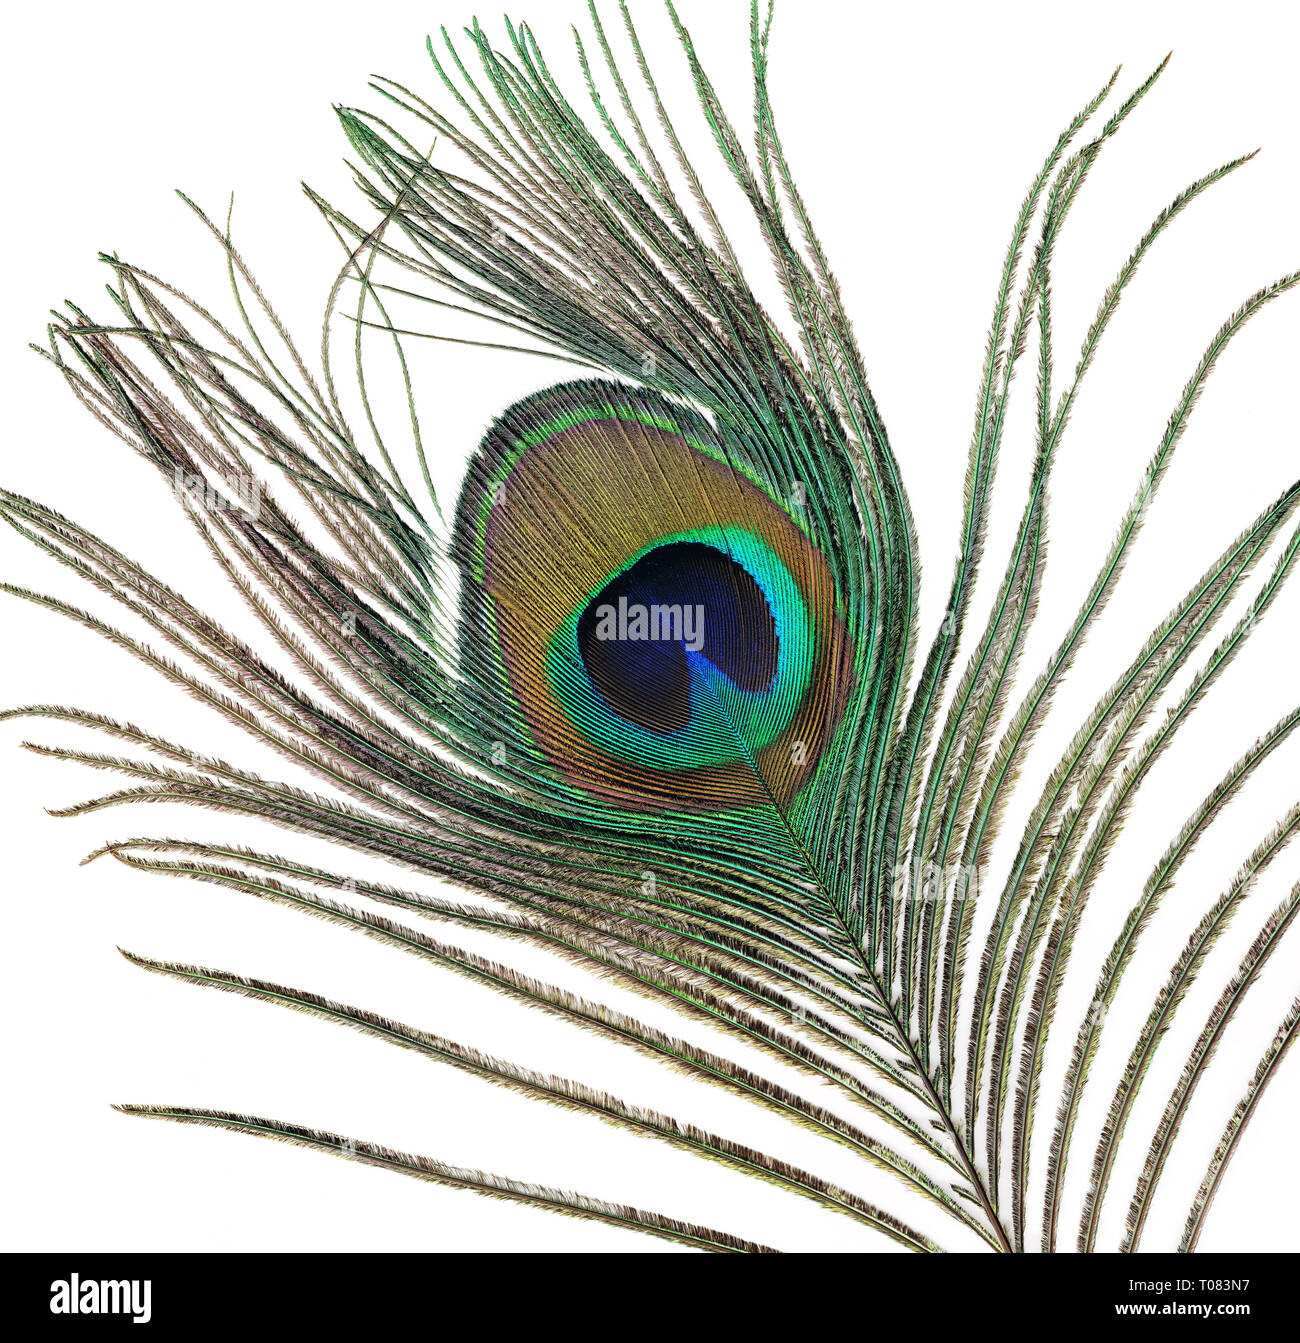 Peacock tail feather - Stock Image